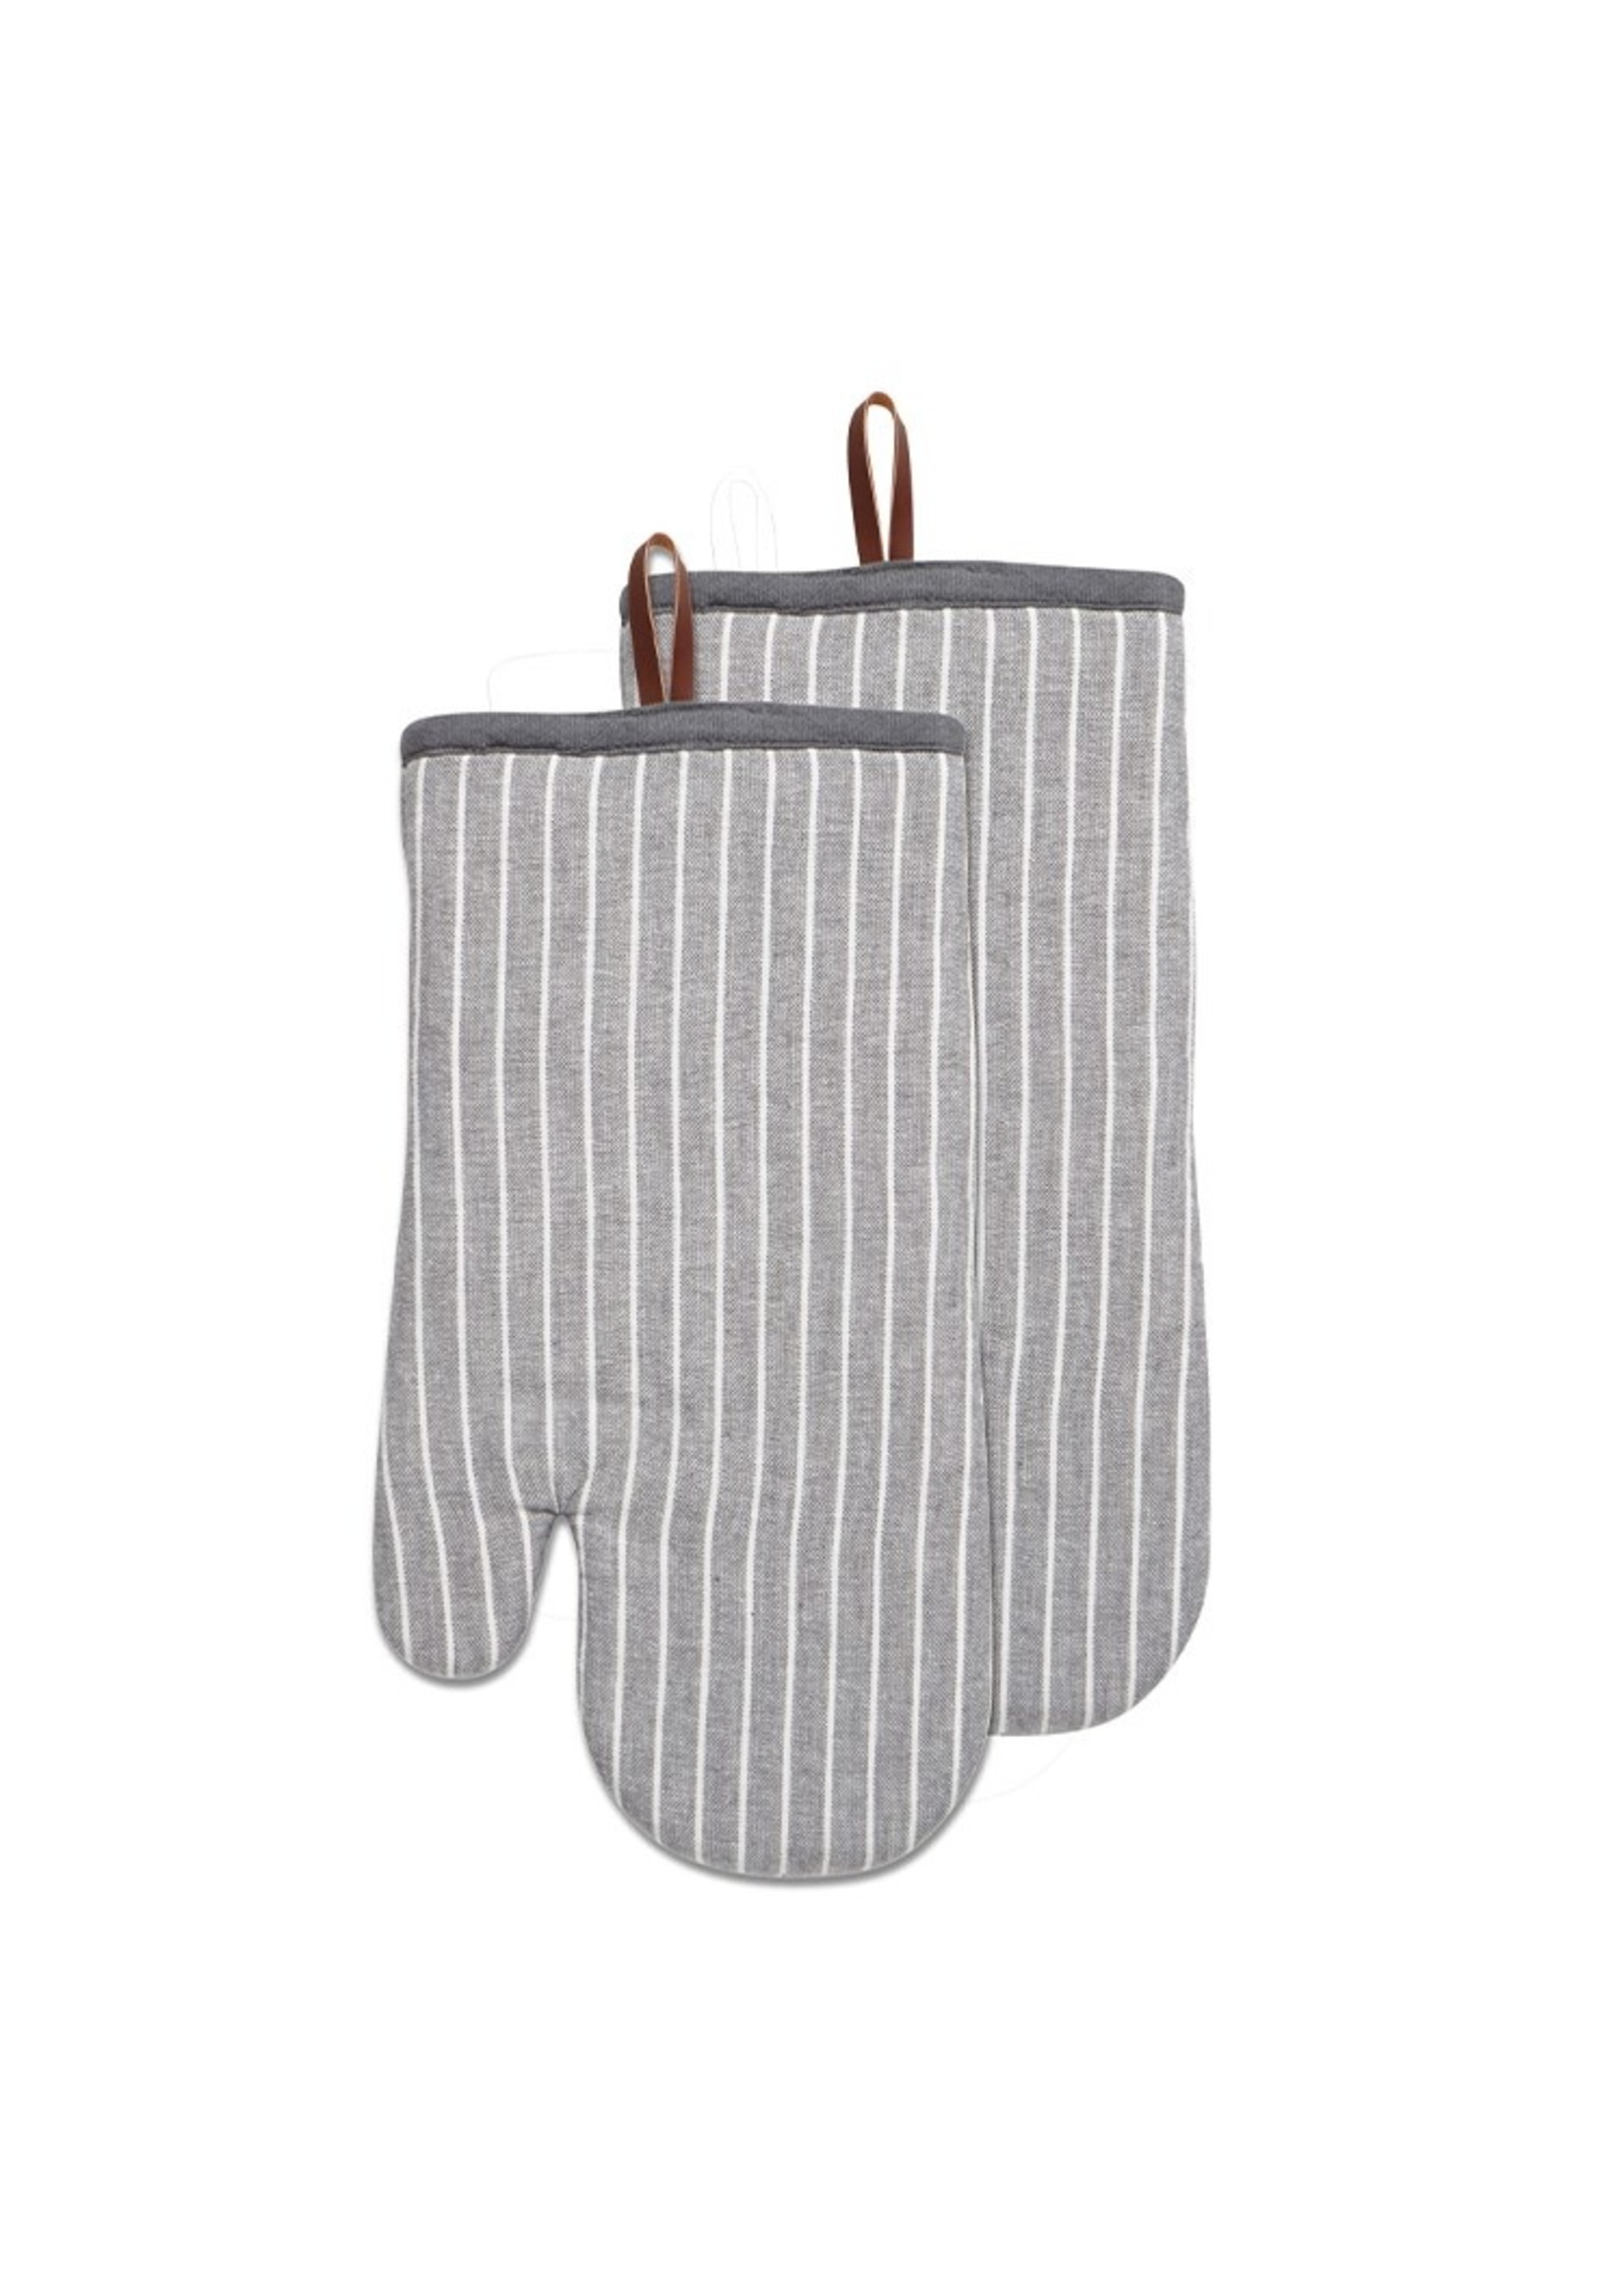 Chambray Stripe Oven Mitts